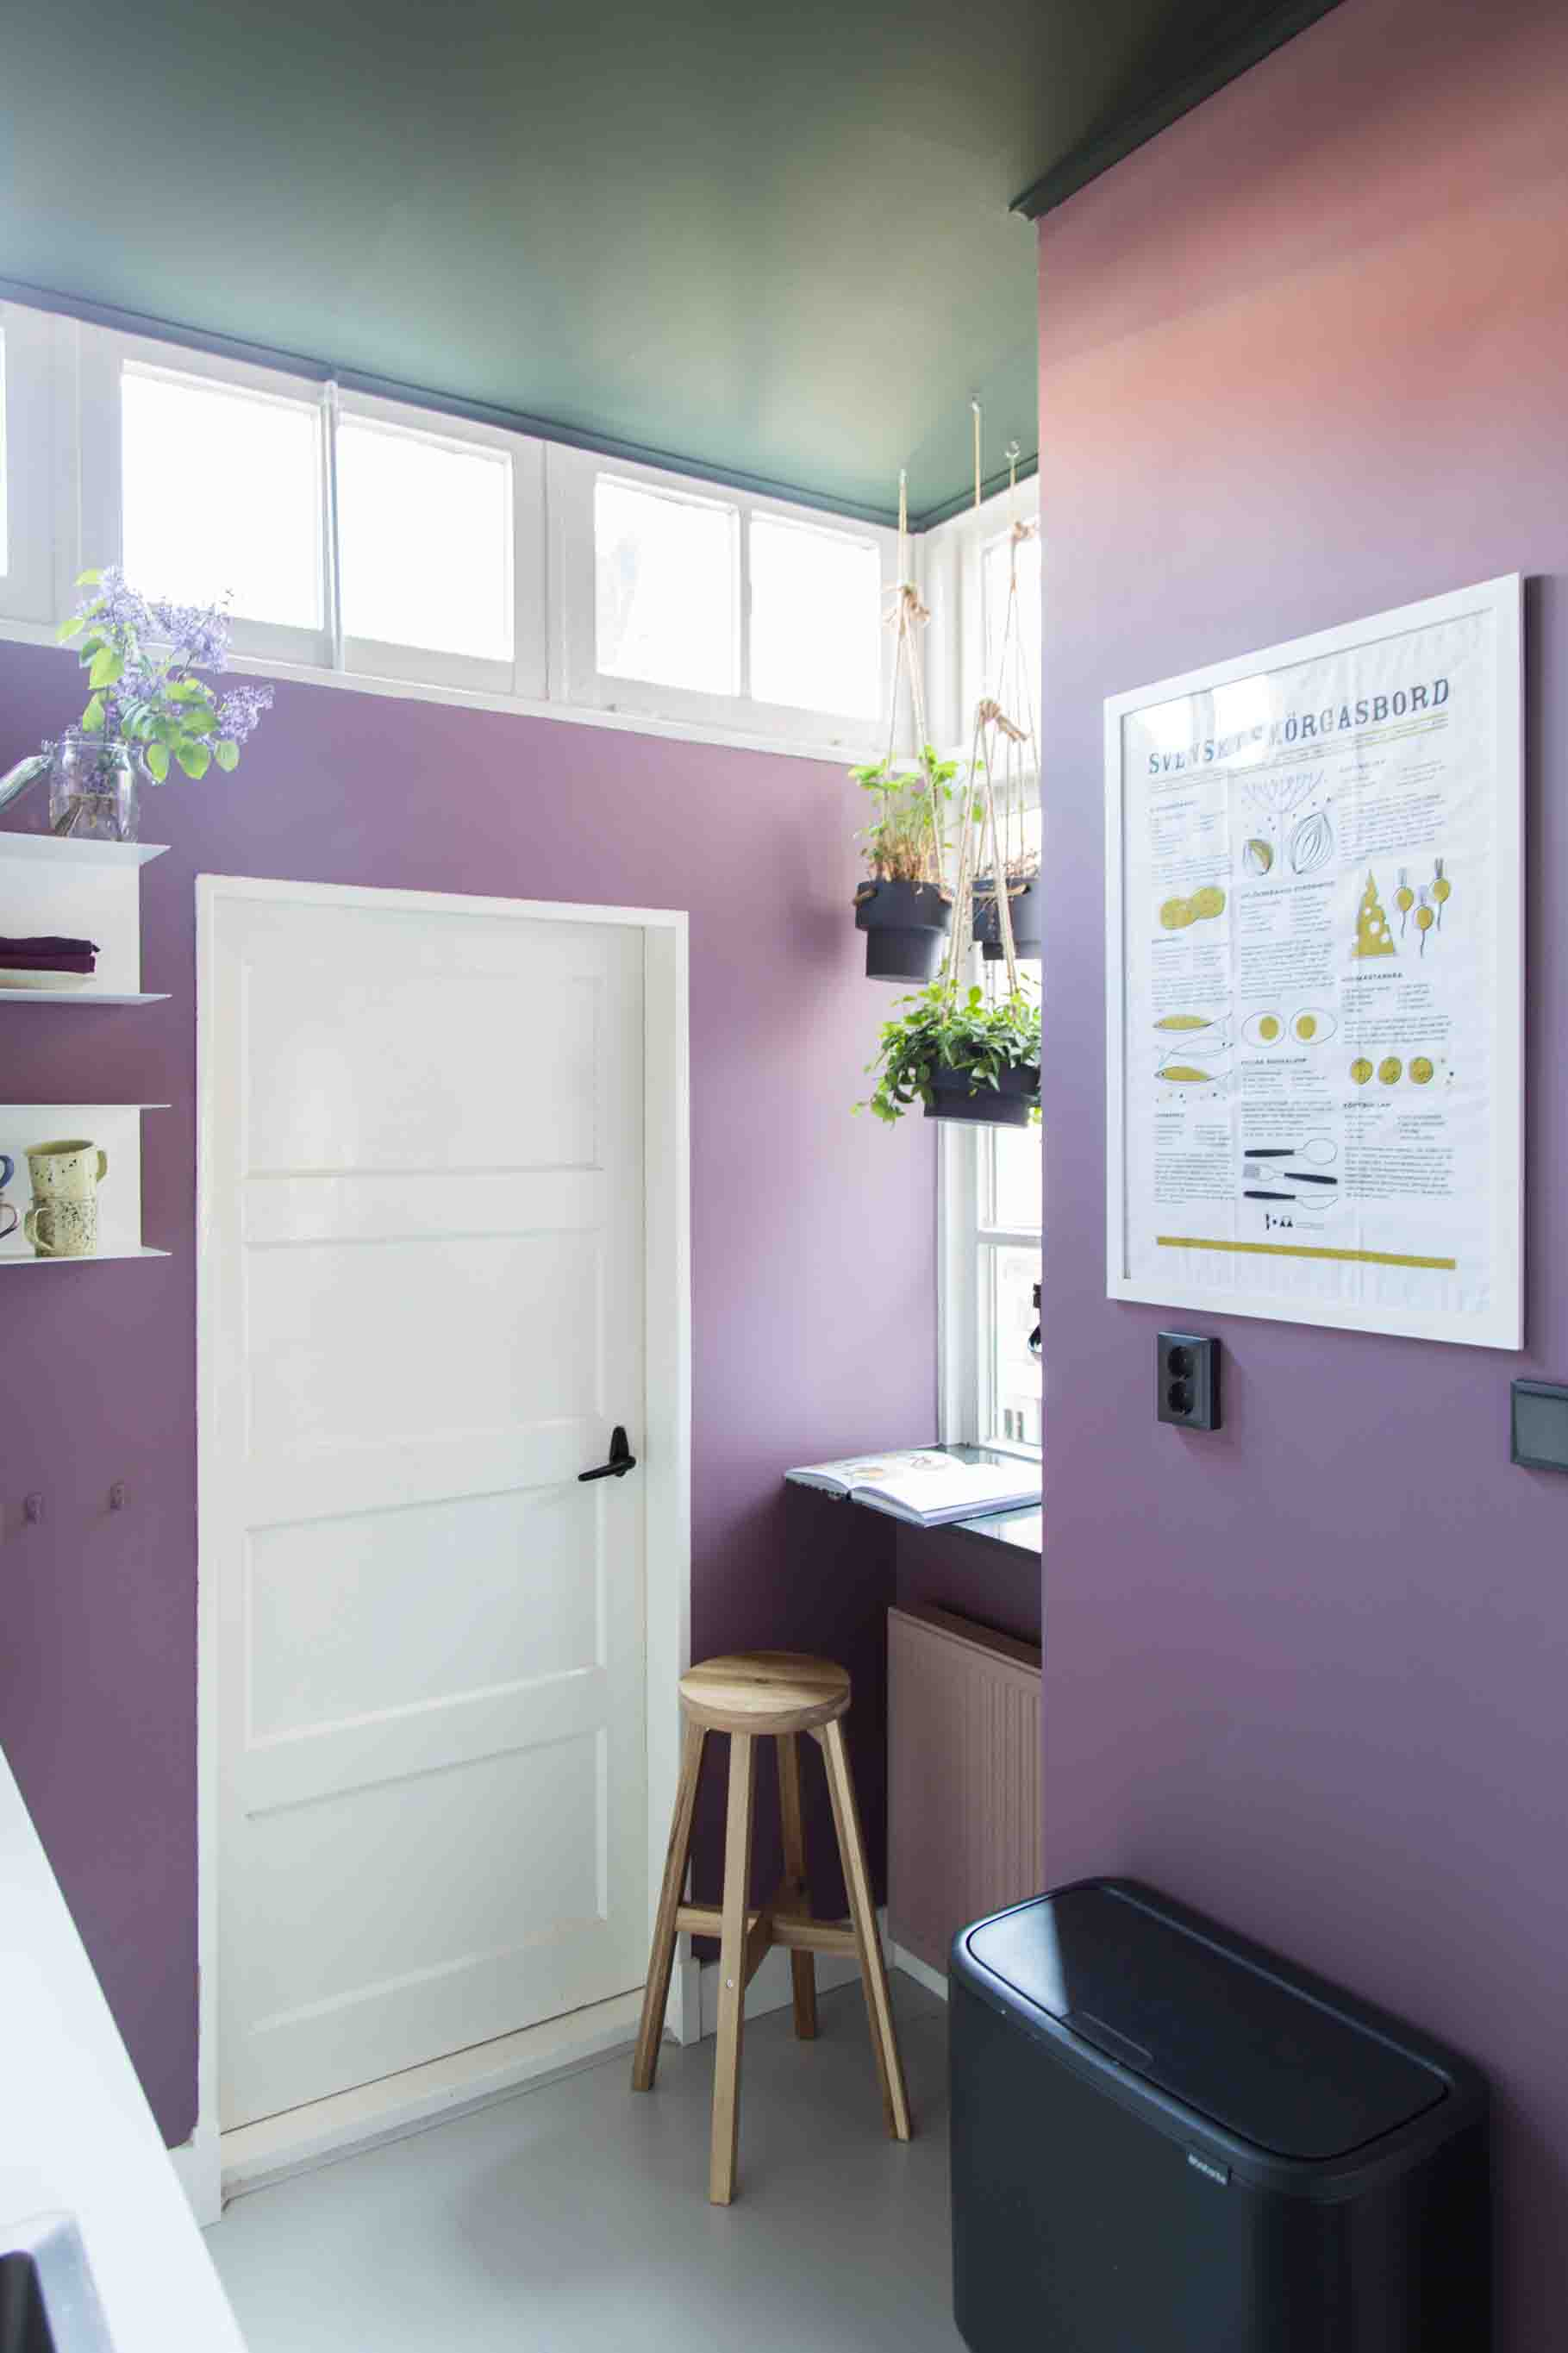 Green ceiling with purple kitchen walls for a modern colorful look